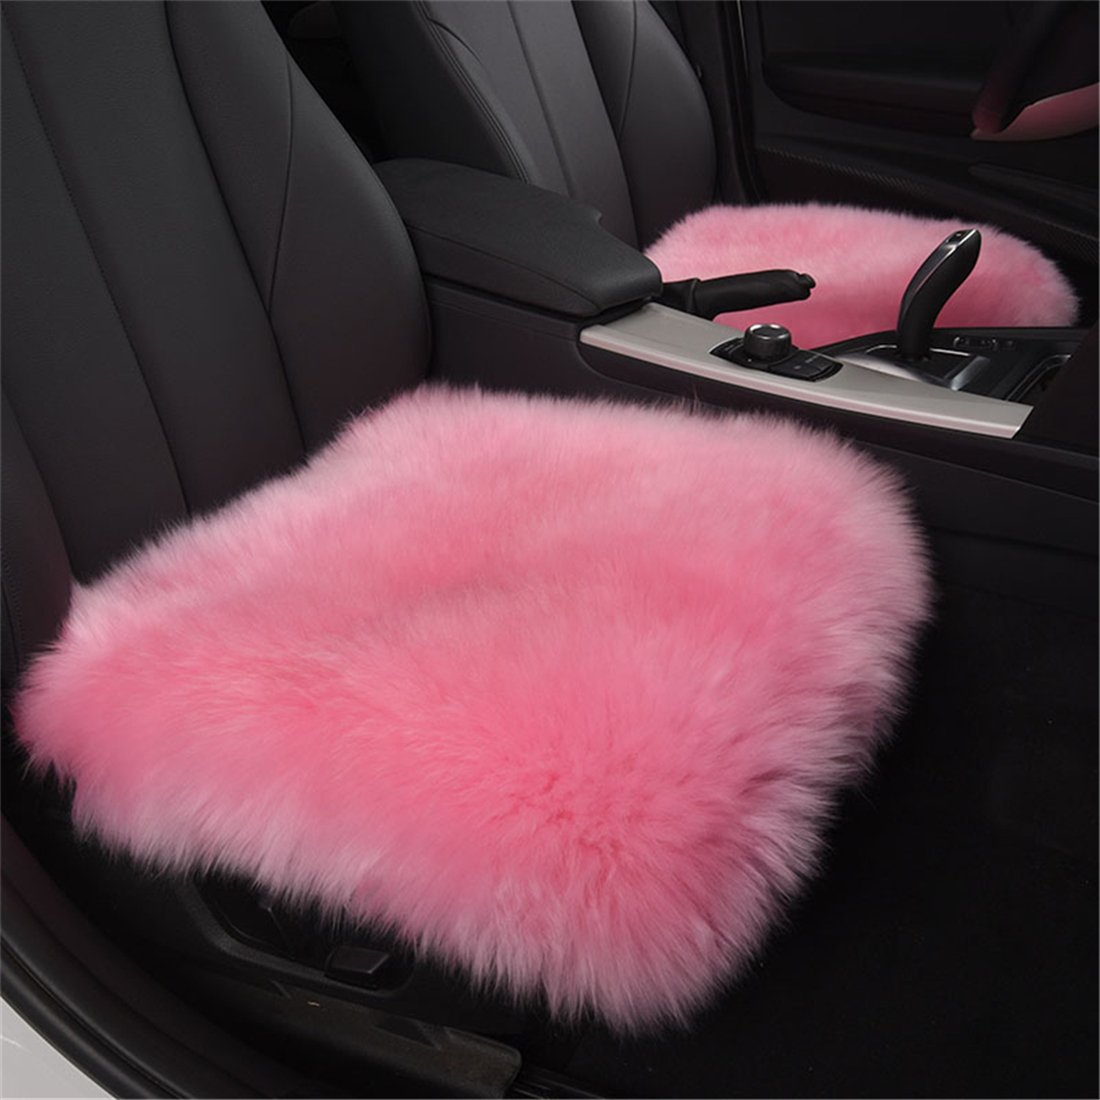 USIX 18'' Luxurious Squared Sheepskin Leather with Long Plush Wool Fur Chair Car Seat Cover Cushion with Straps Pad Mat Rug for Car Front Seats, Hard Wood Chairs, Office Chairs (Pink)